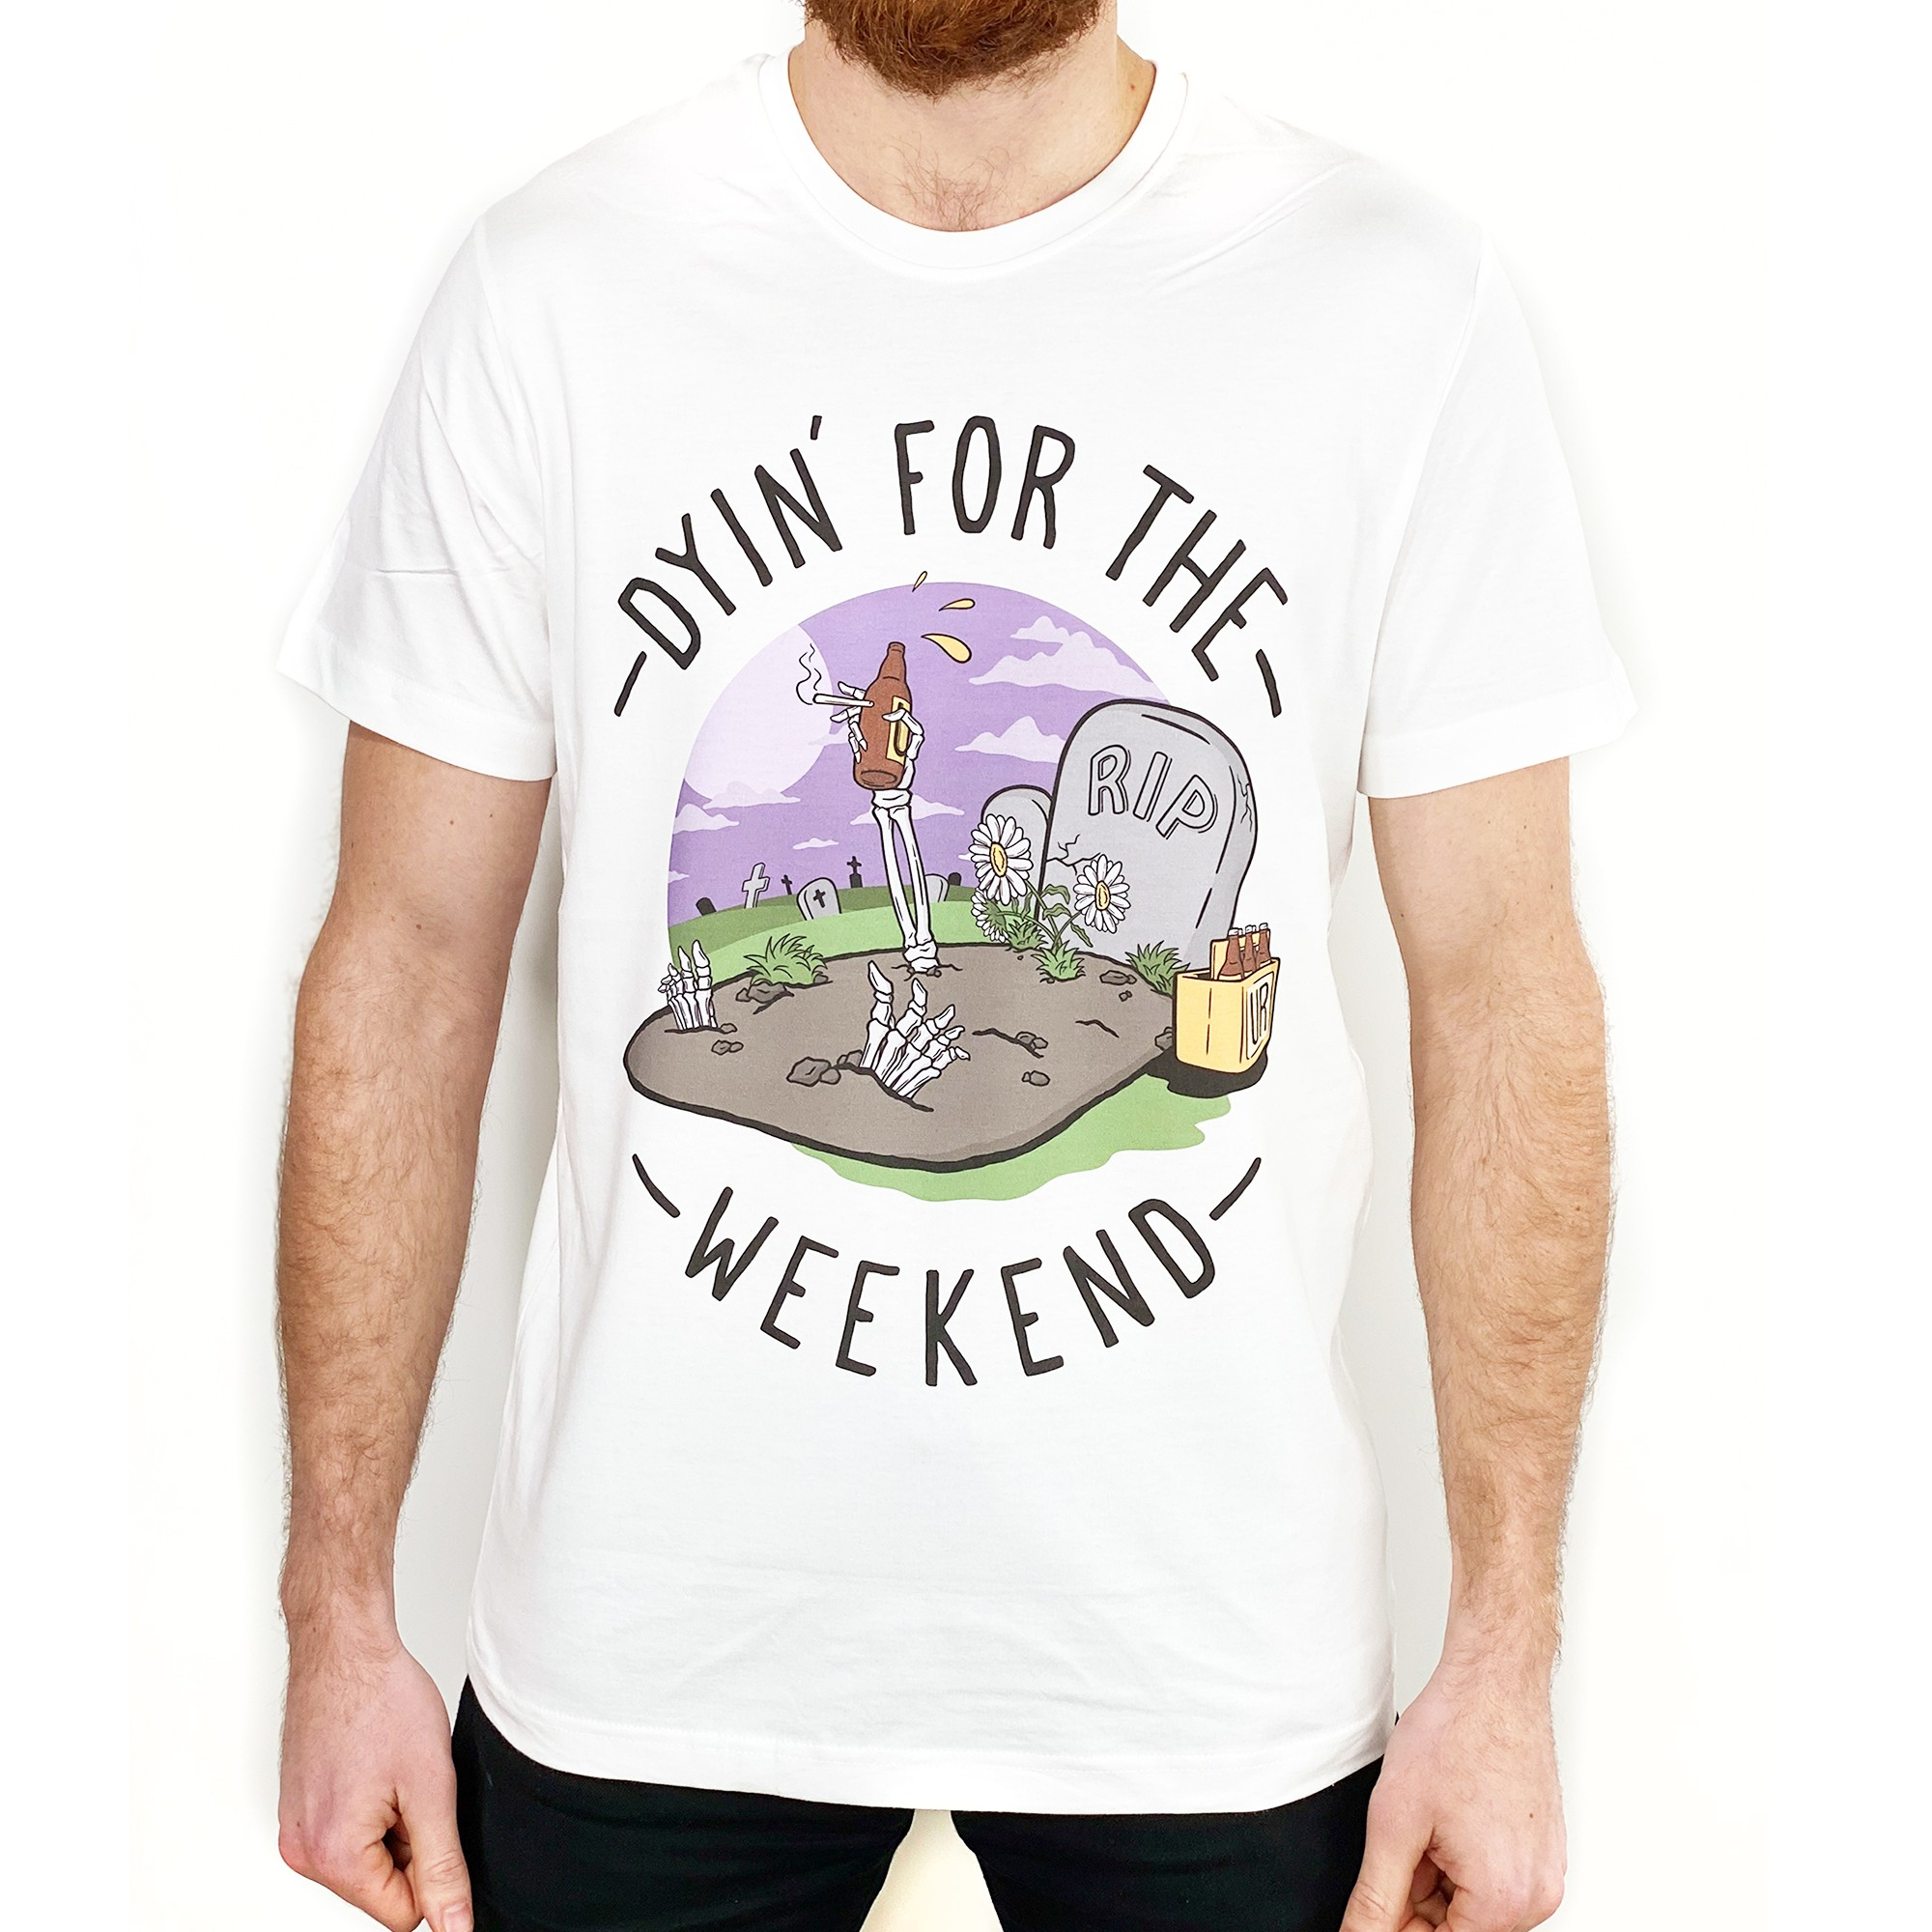 DYIN FOR THE WEEKEND WHITE TEE